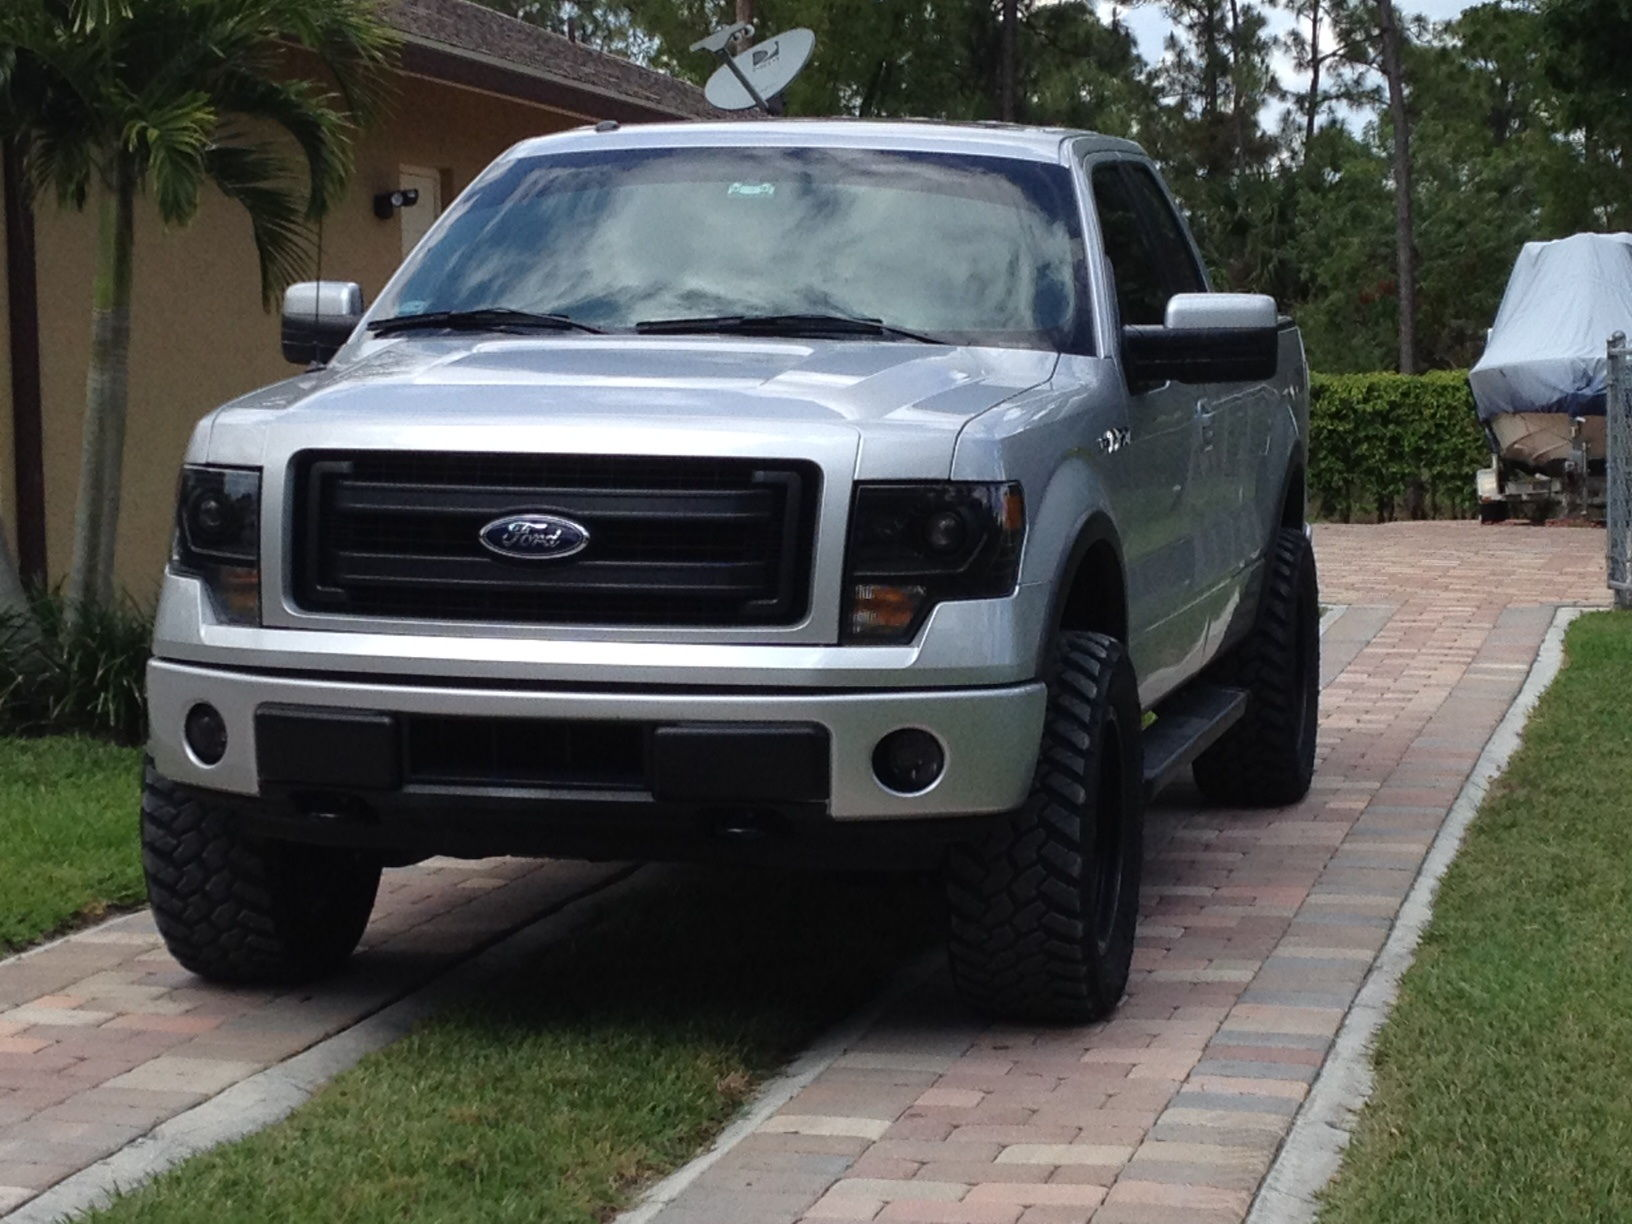 14 fx4 20x9 1 fuel trophy 305 55 nitto trail grappler